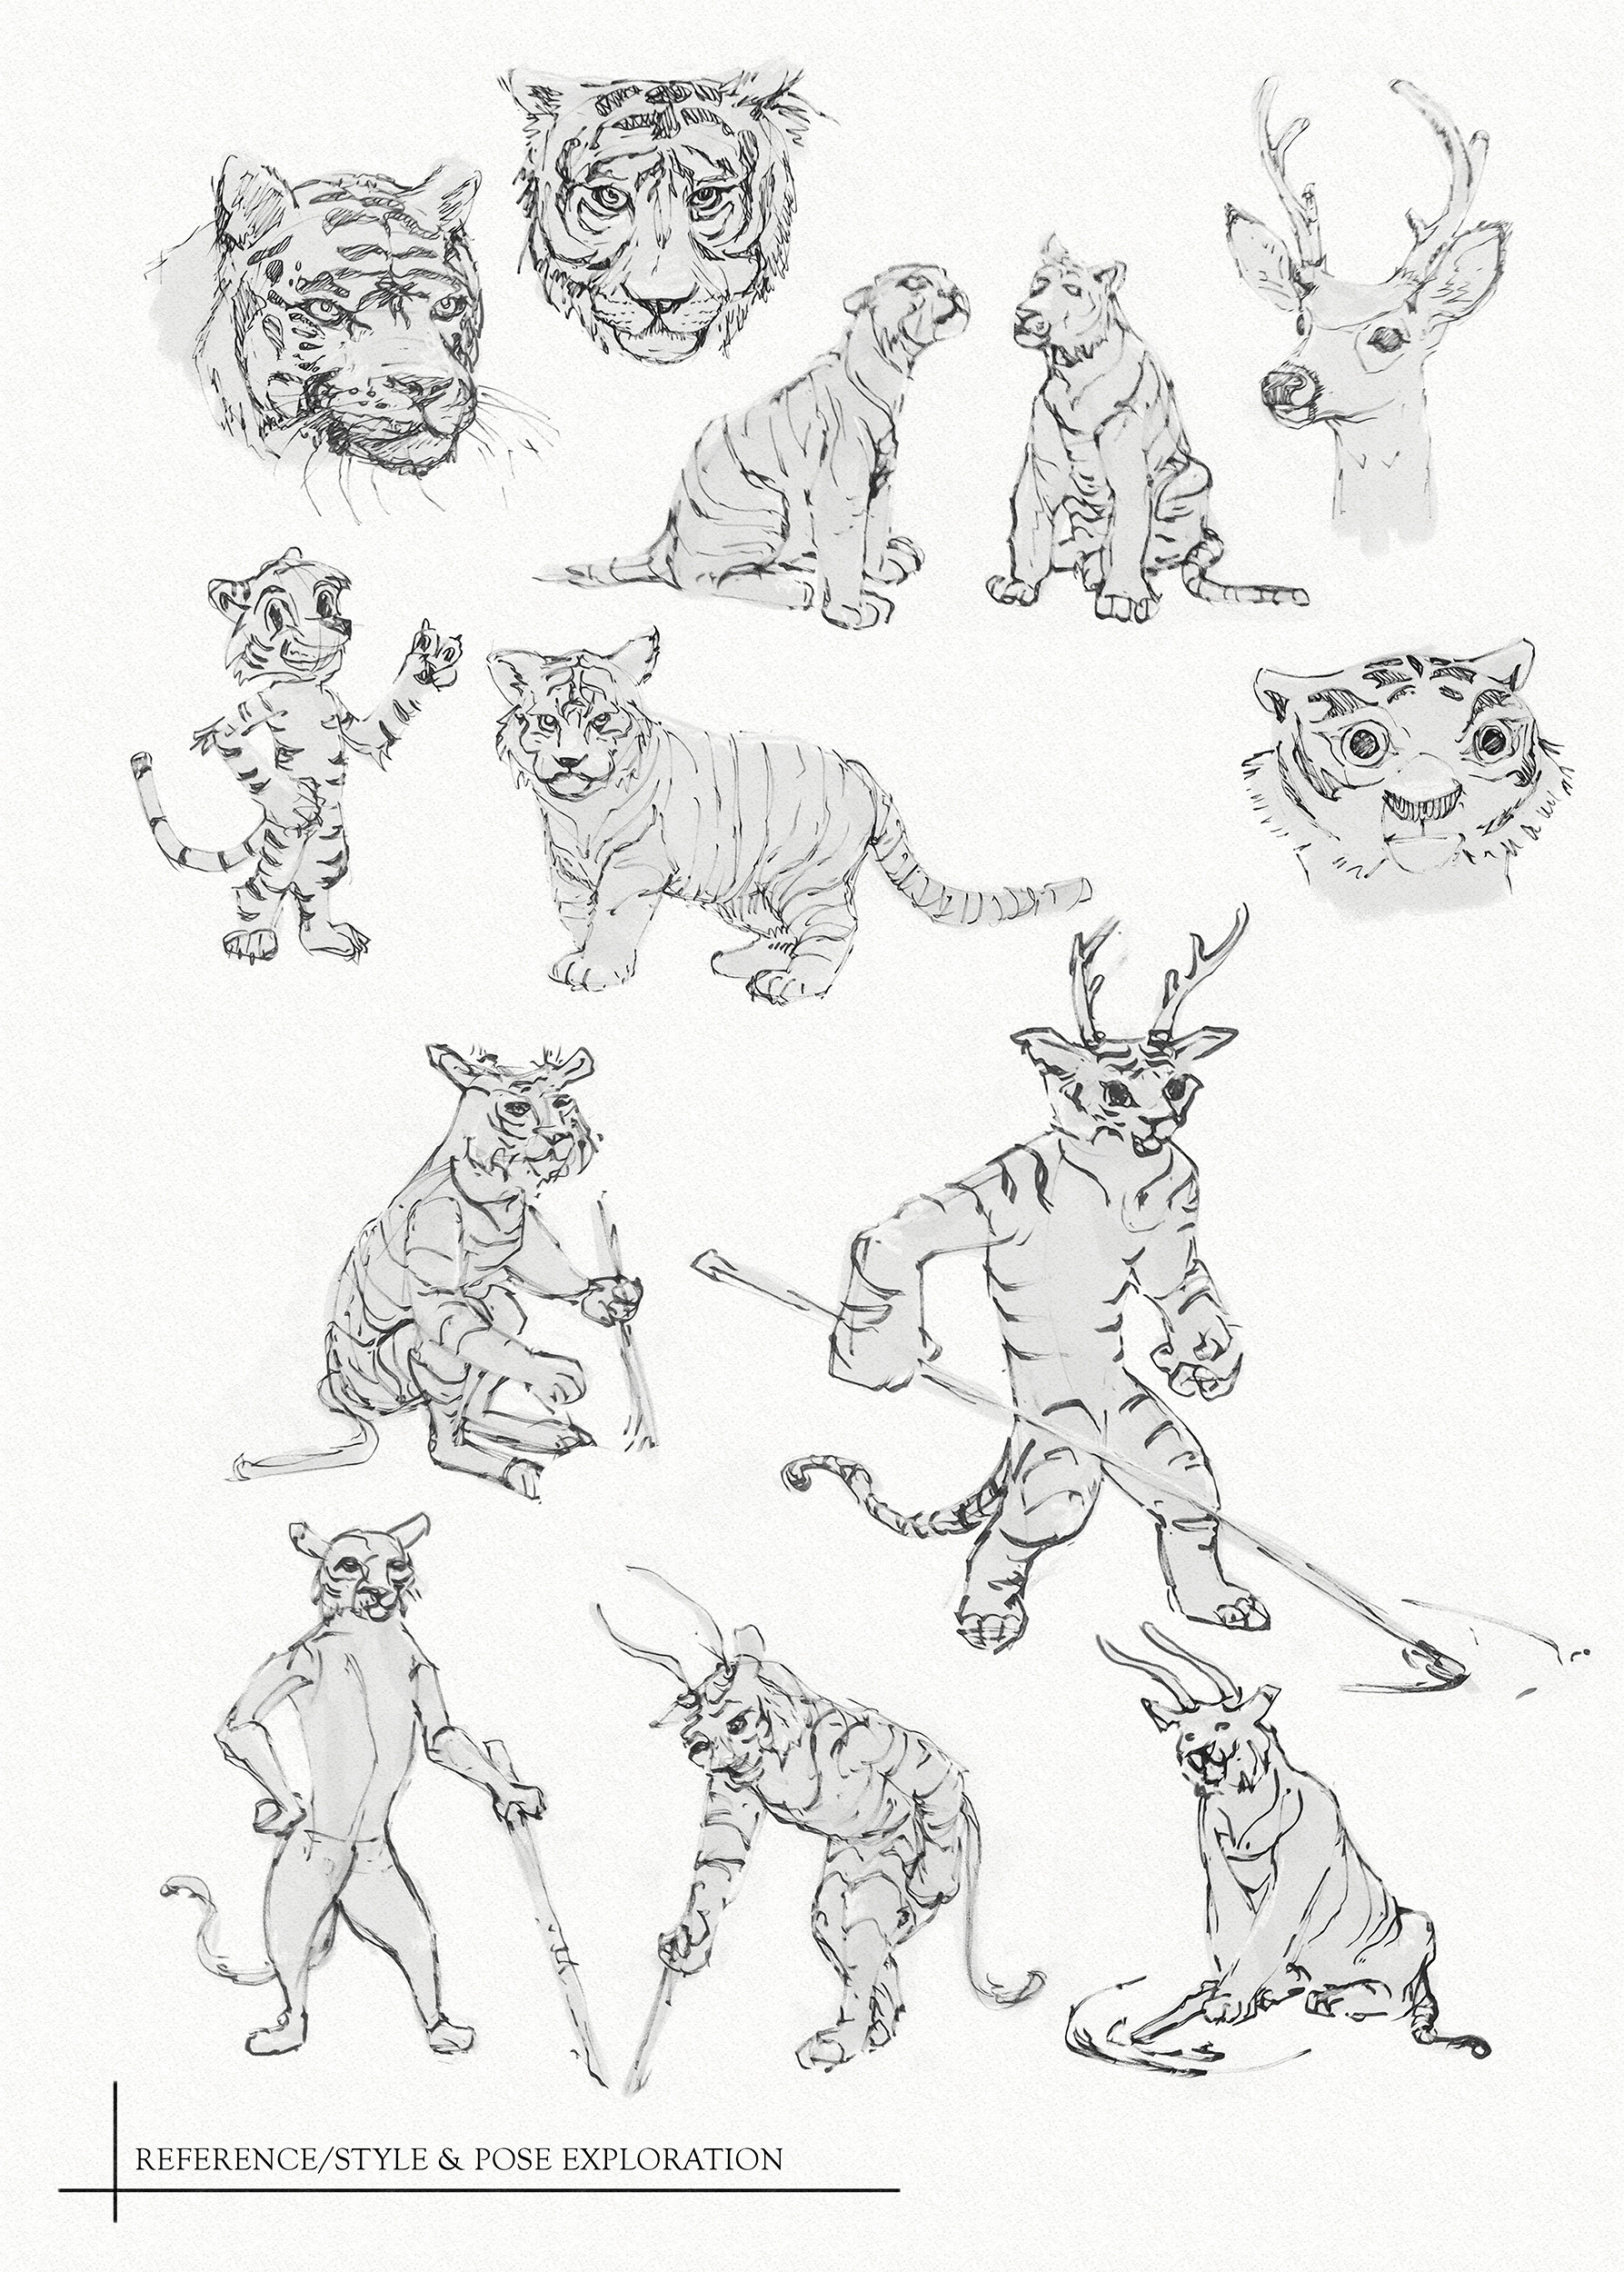 Matthew trickel tiger reference style pose exploration web